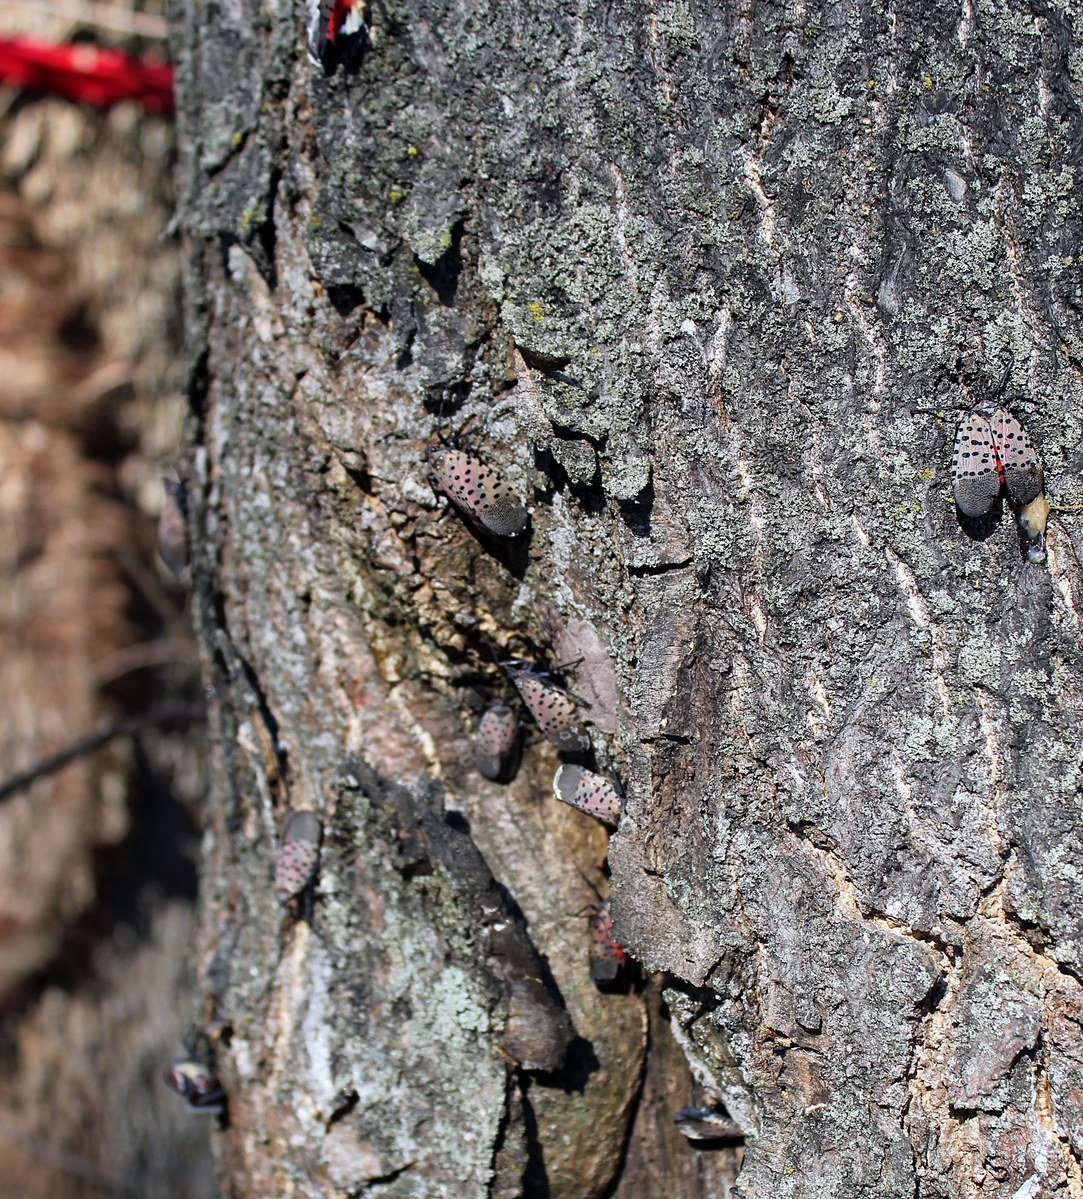 From as early as July until November, the Spotted Lanternfly adults may be present. You'll find them on the trunks of trees like Tree of Heaven (Ailanthus altissima) or trees growing around them. They are also reported on grape vines (Vitis sp.) Photo: Nancy Bosold, Horticulture Educator, Penn State Extension, Berks Co.